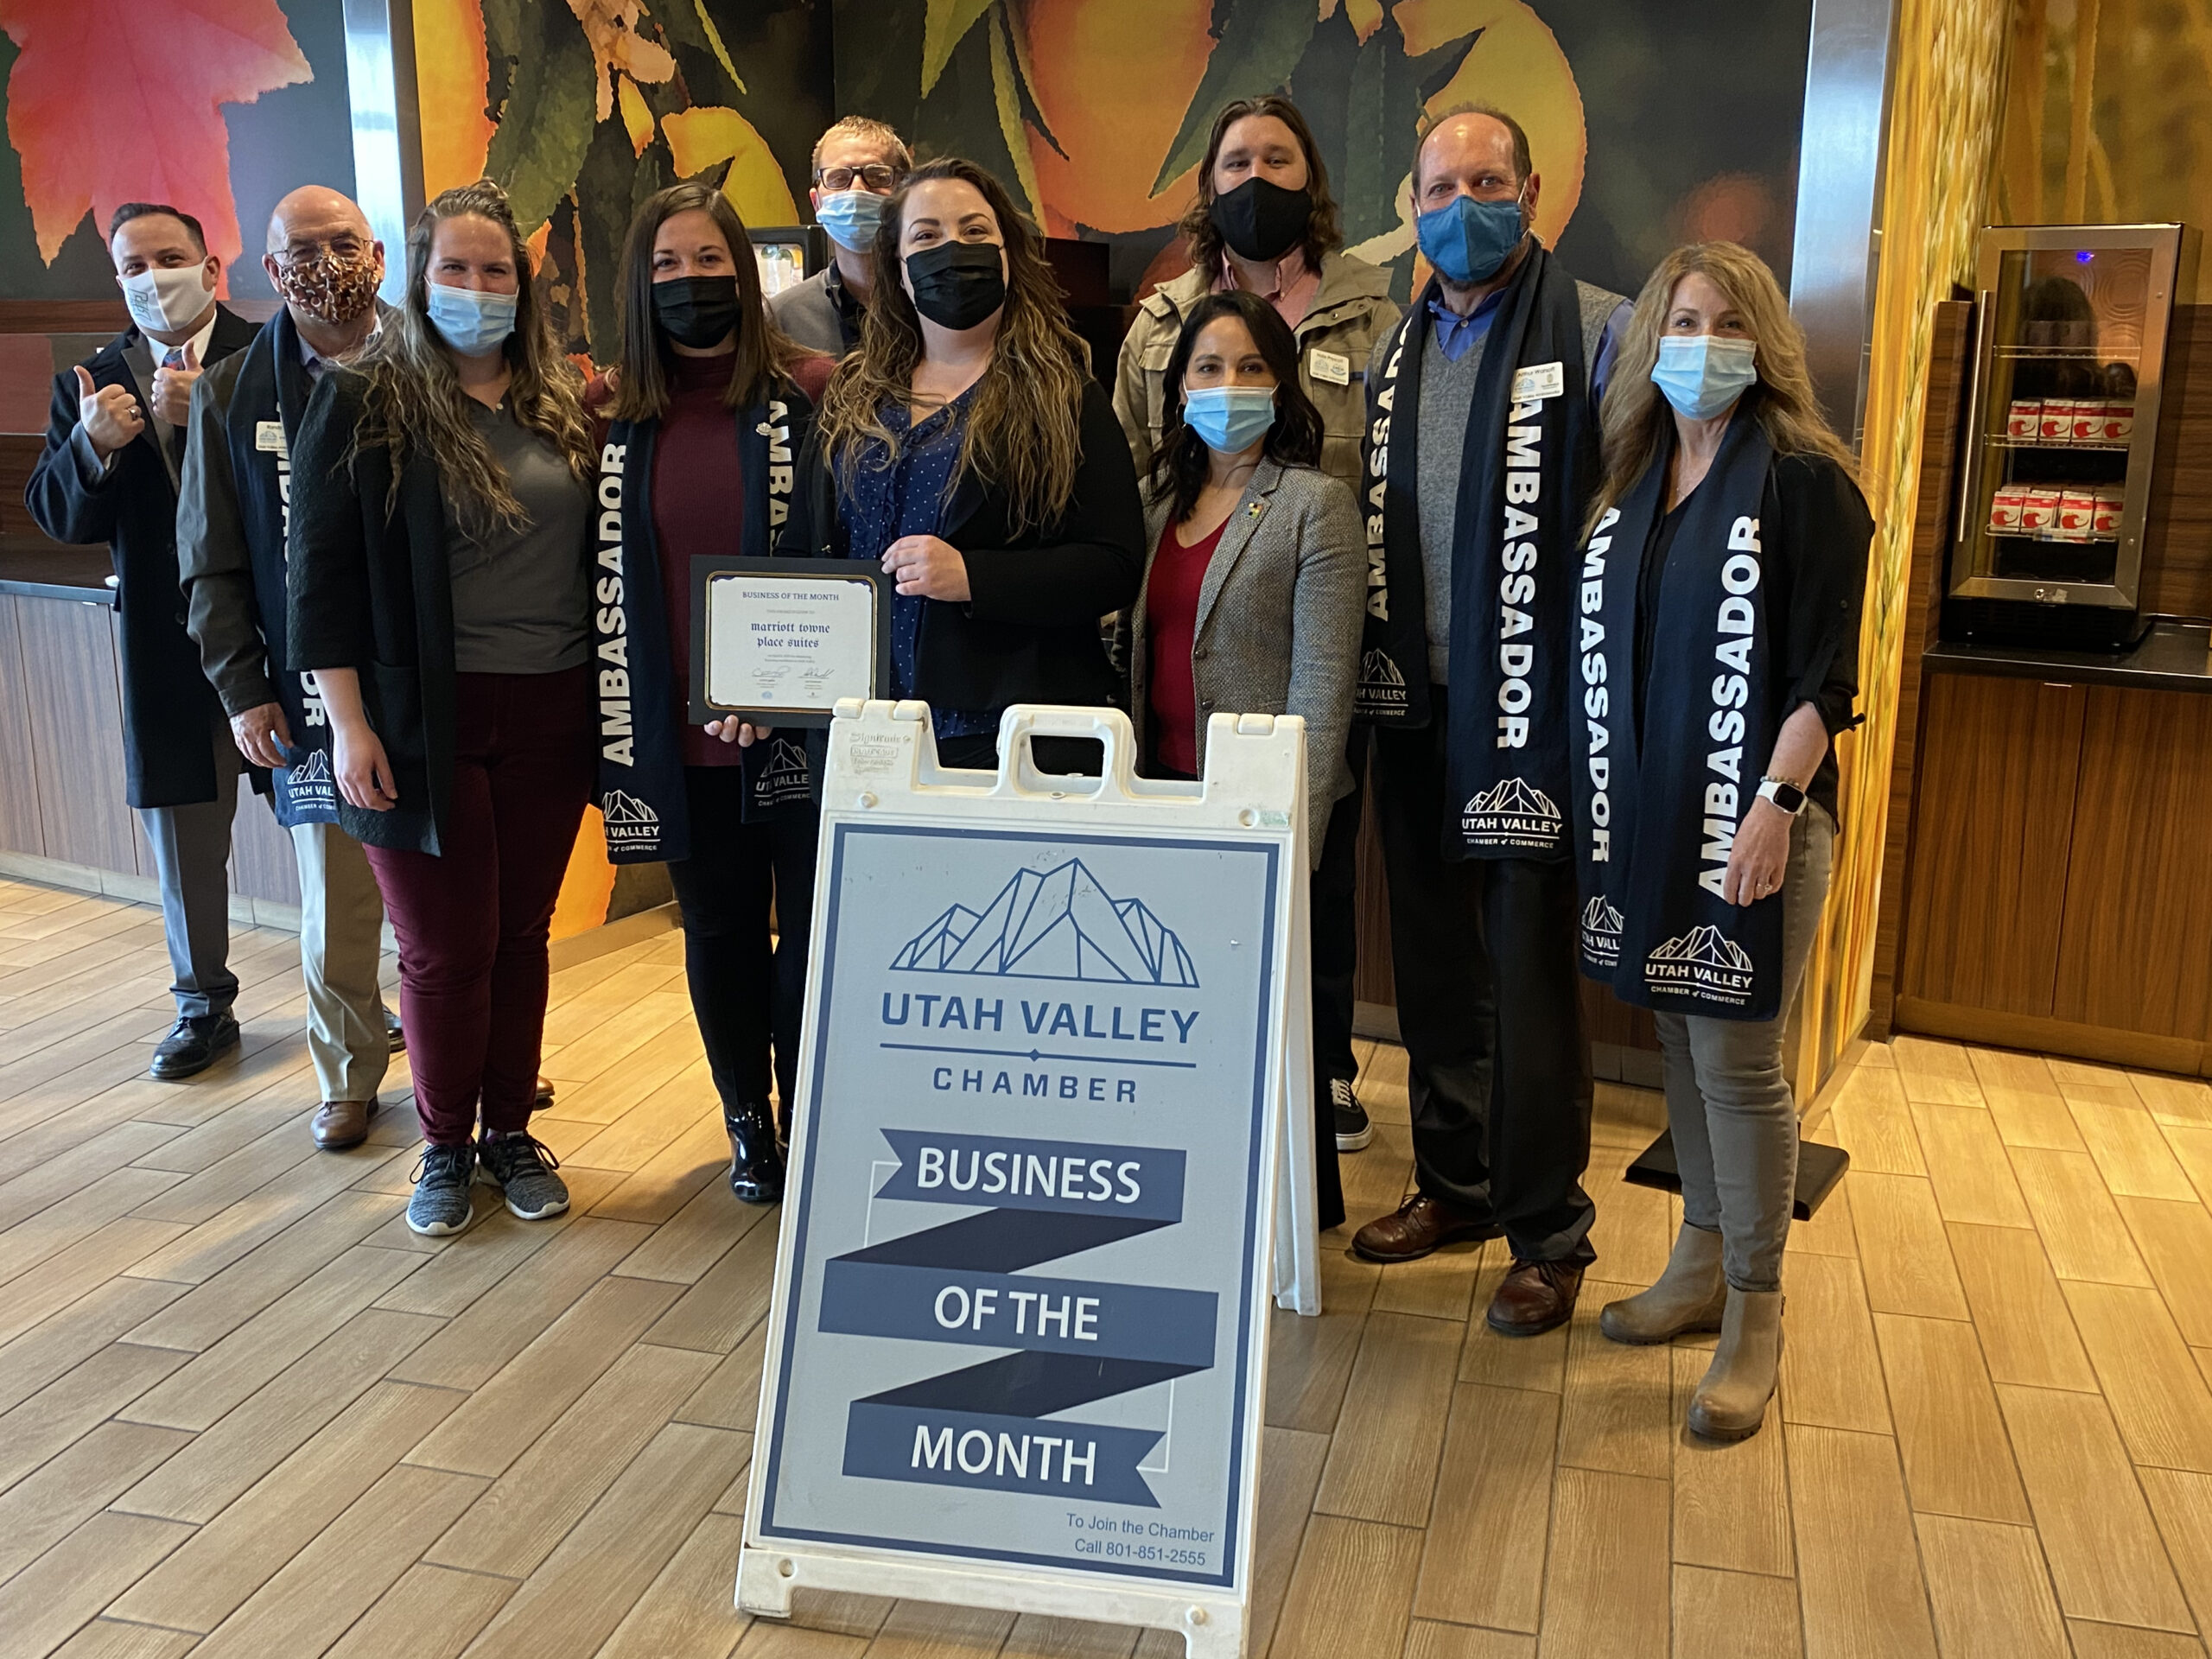 Pennbridge's TownePlace Suites in Orem recently had their Business of the Month presentation and was recognized as Utah Valley Chamber's business of the month for March.